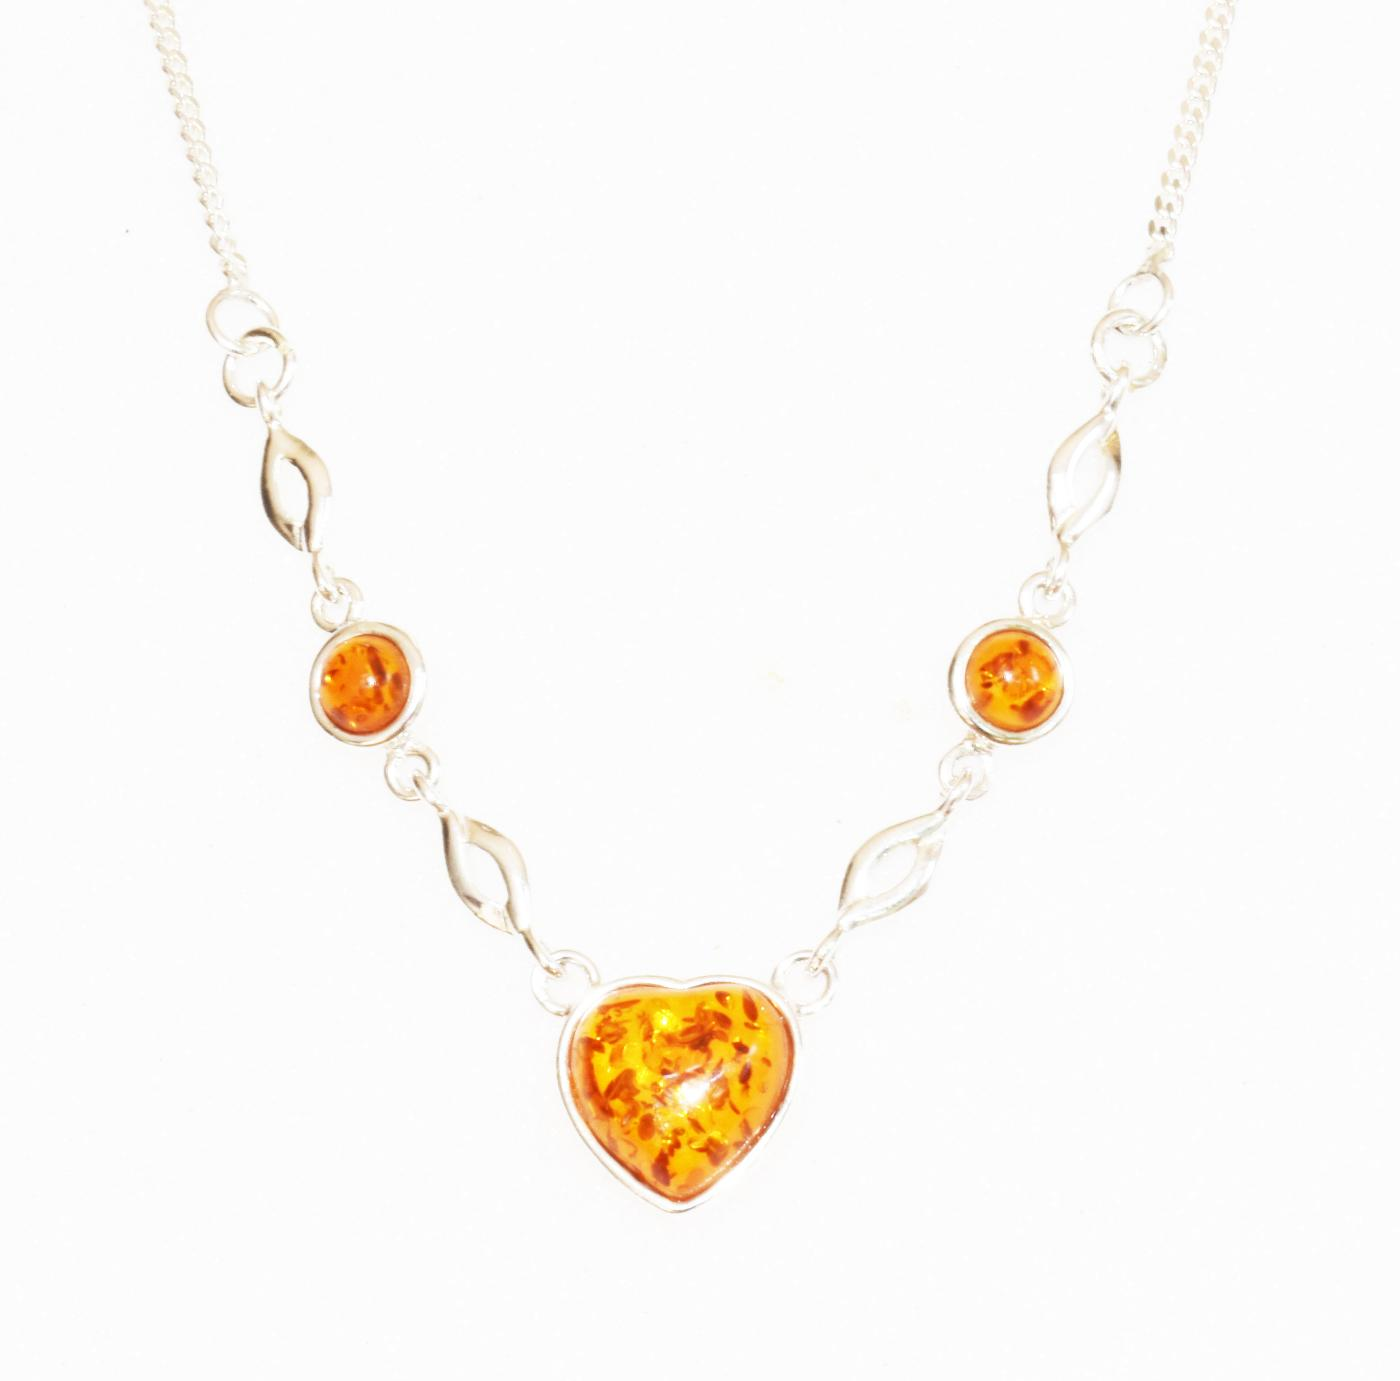 Baltic amber heart necklace set in sterling silver.